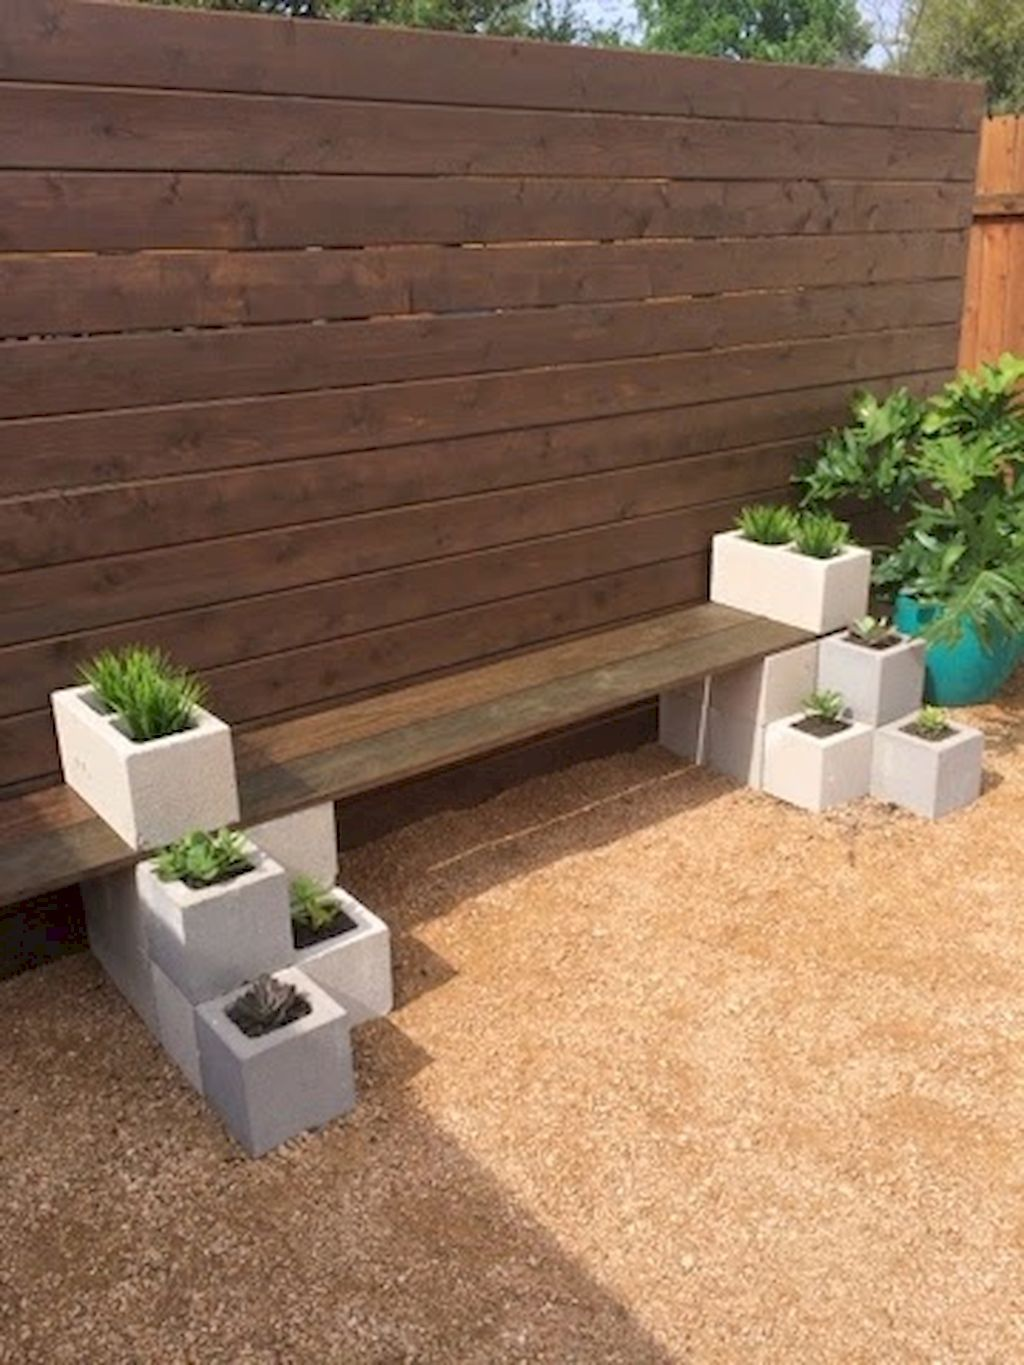 17 diy projects for the home backyards ideas